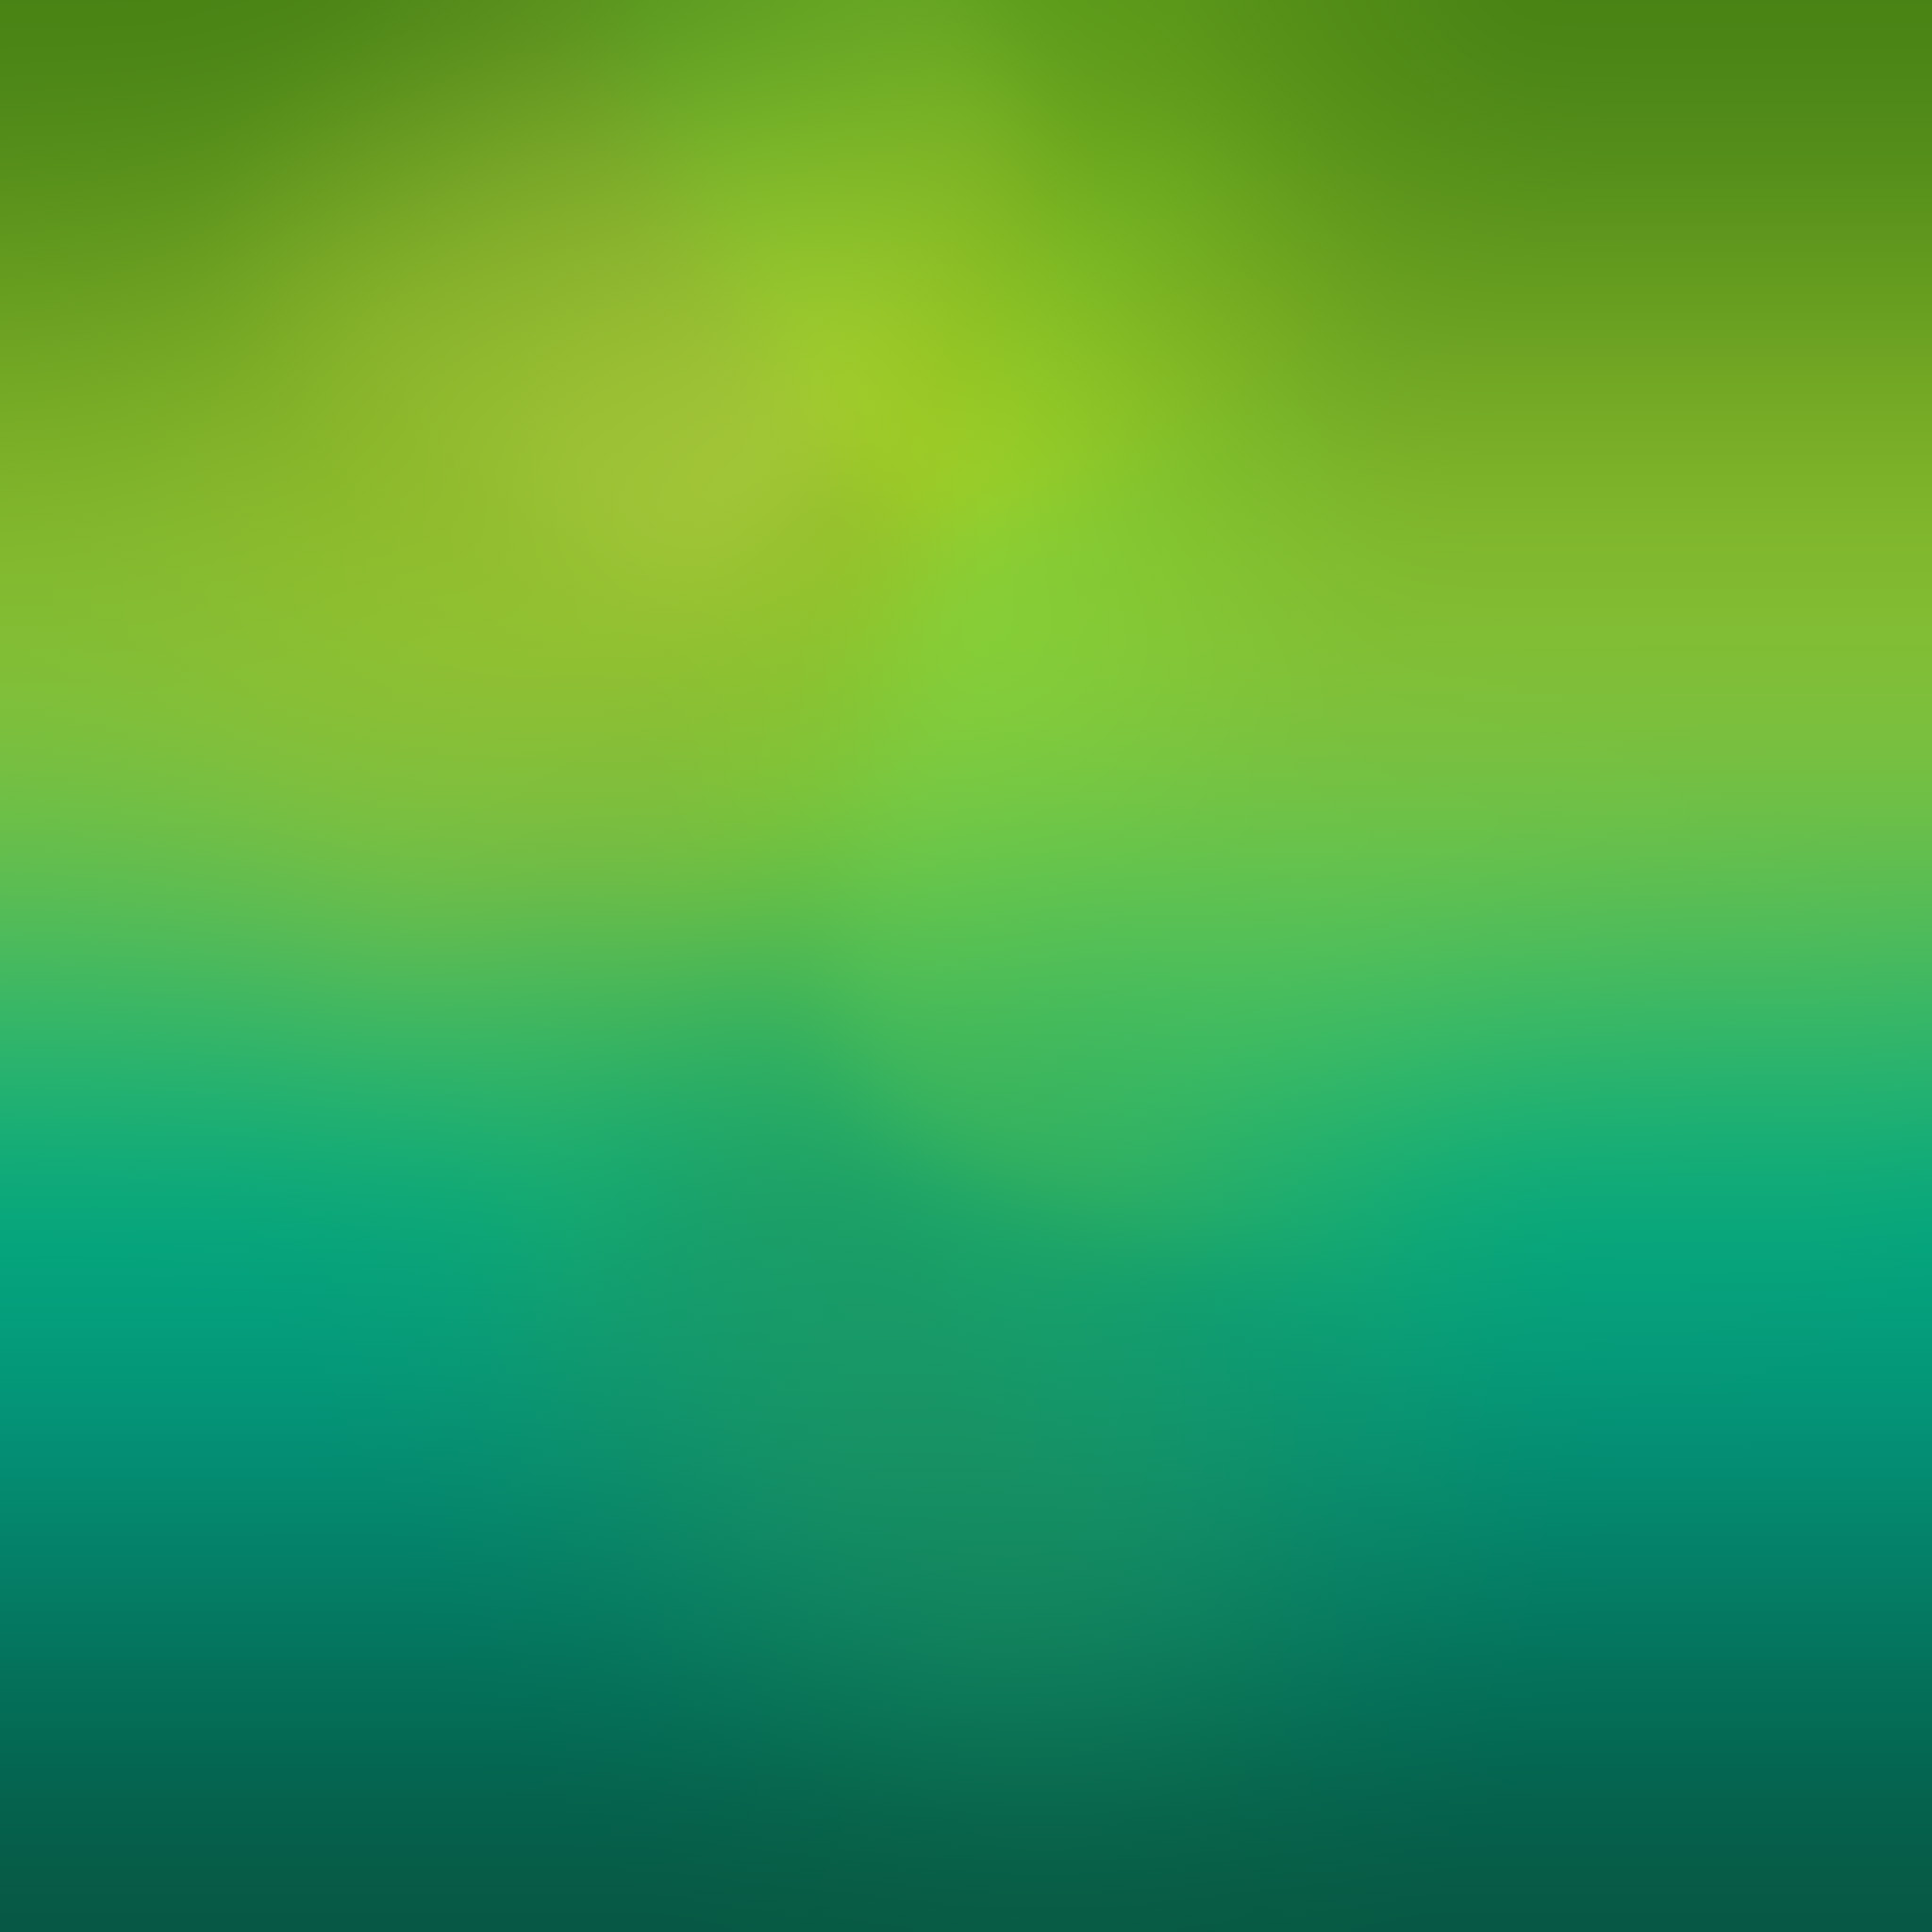 FREEIOS7 sf67-green-yellow-peace-love-gradation-blur - parallax HD iPhone iPad wallpaper